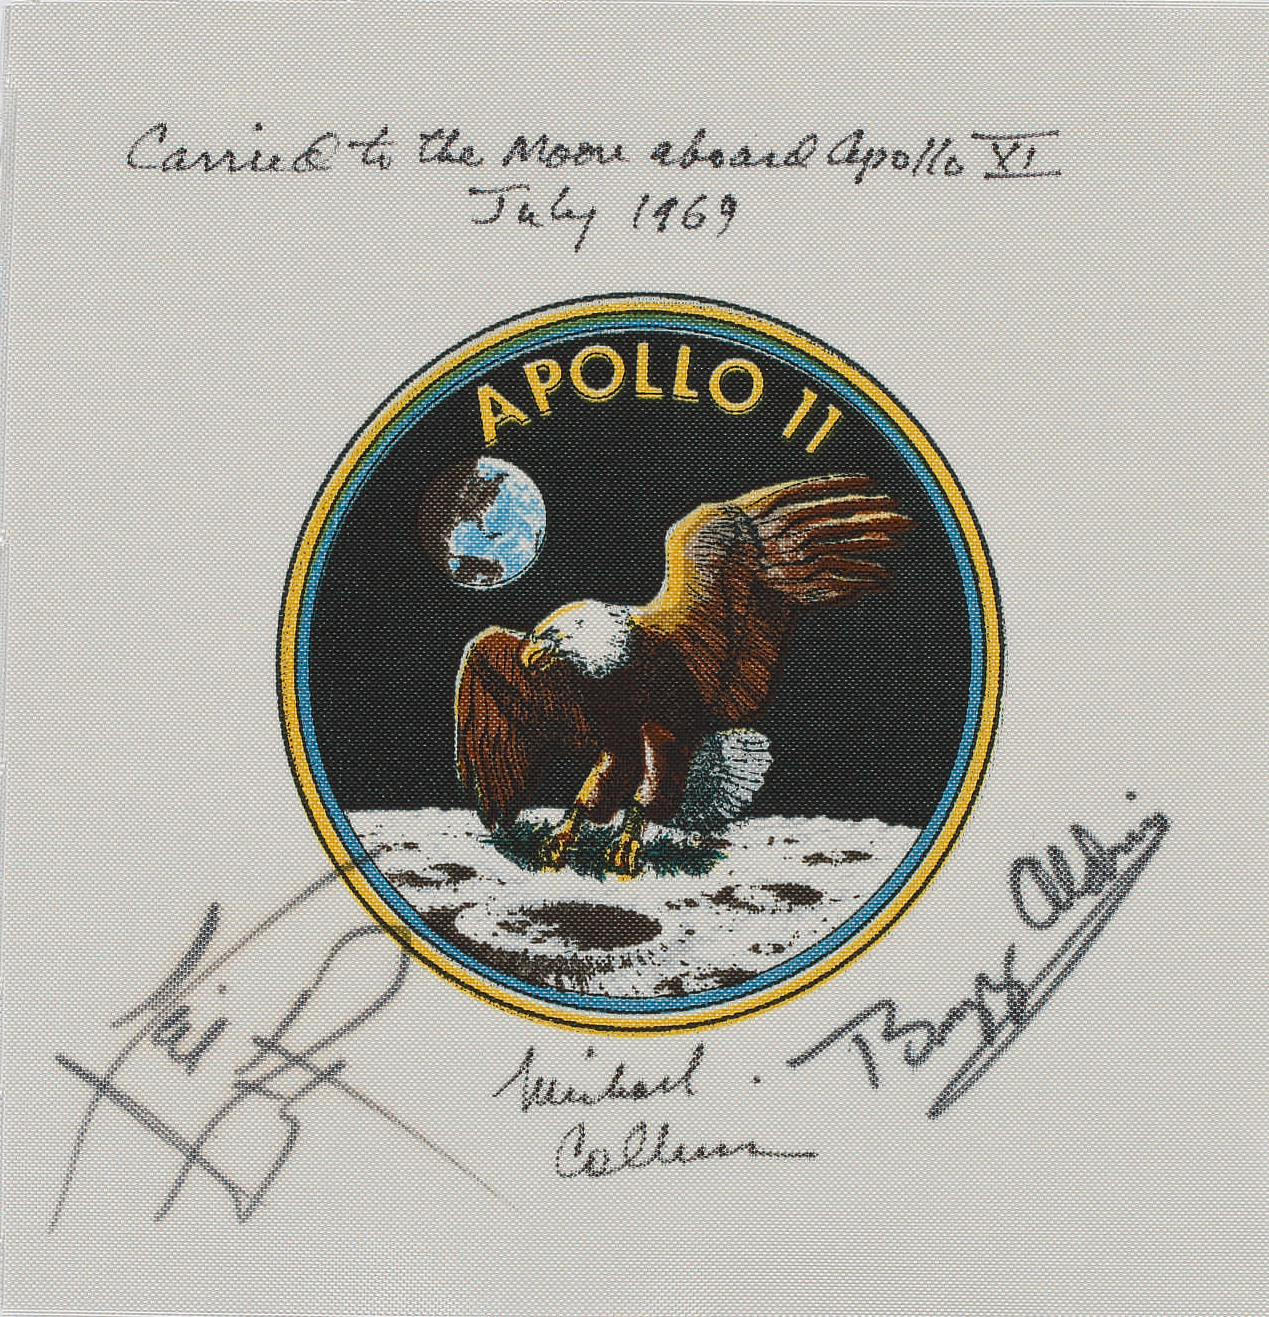 Flown to the Moon on Apollo 11-Command Module Pilot Michael Collins' Crew-Signed Apollo 11 Emblem. One of the very flew flown Apollo 11 mission artifacts to be signed by Neil Armstrong.